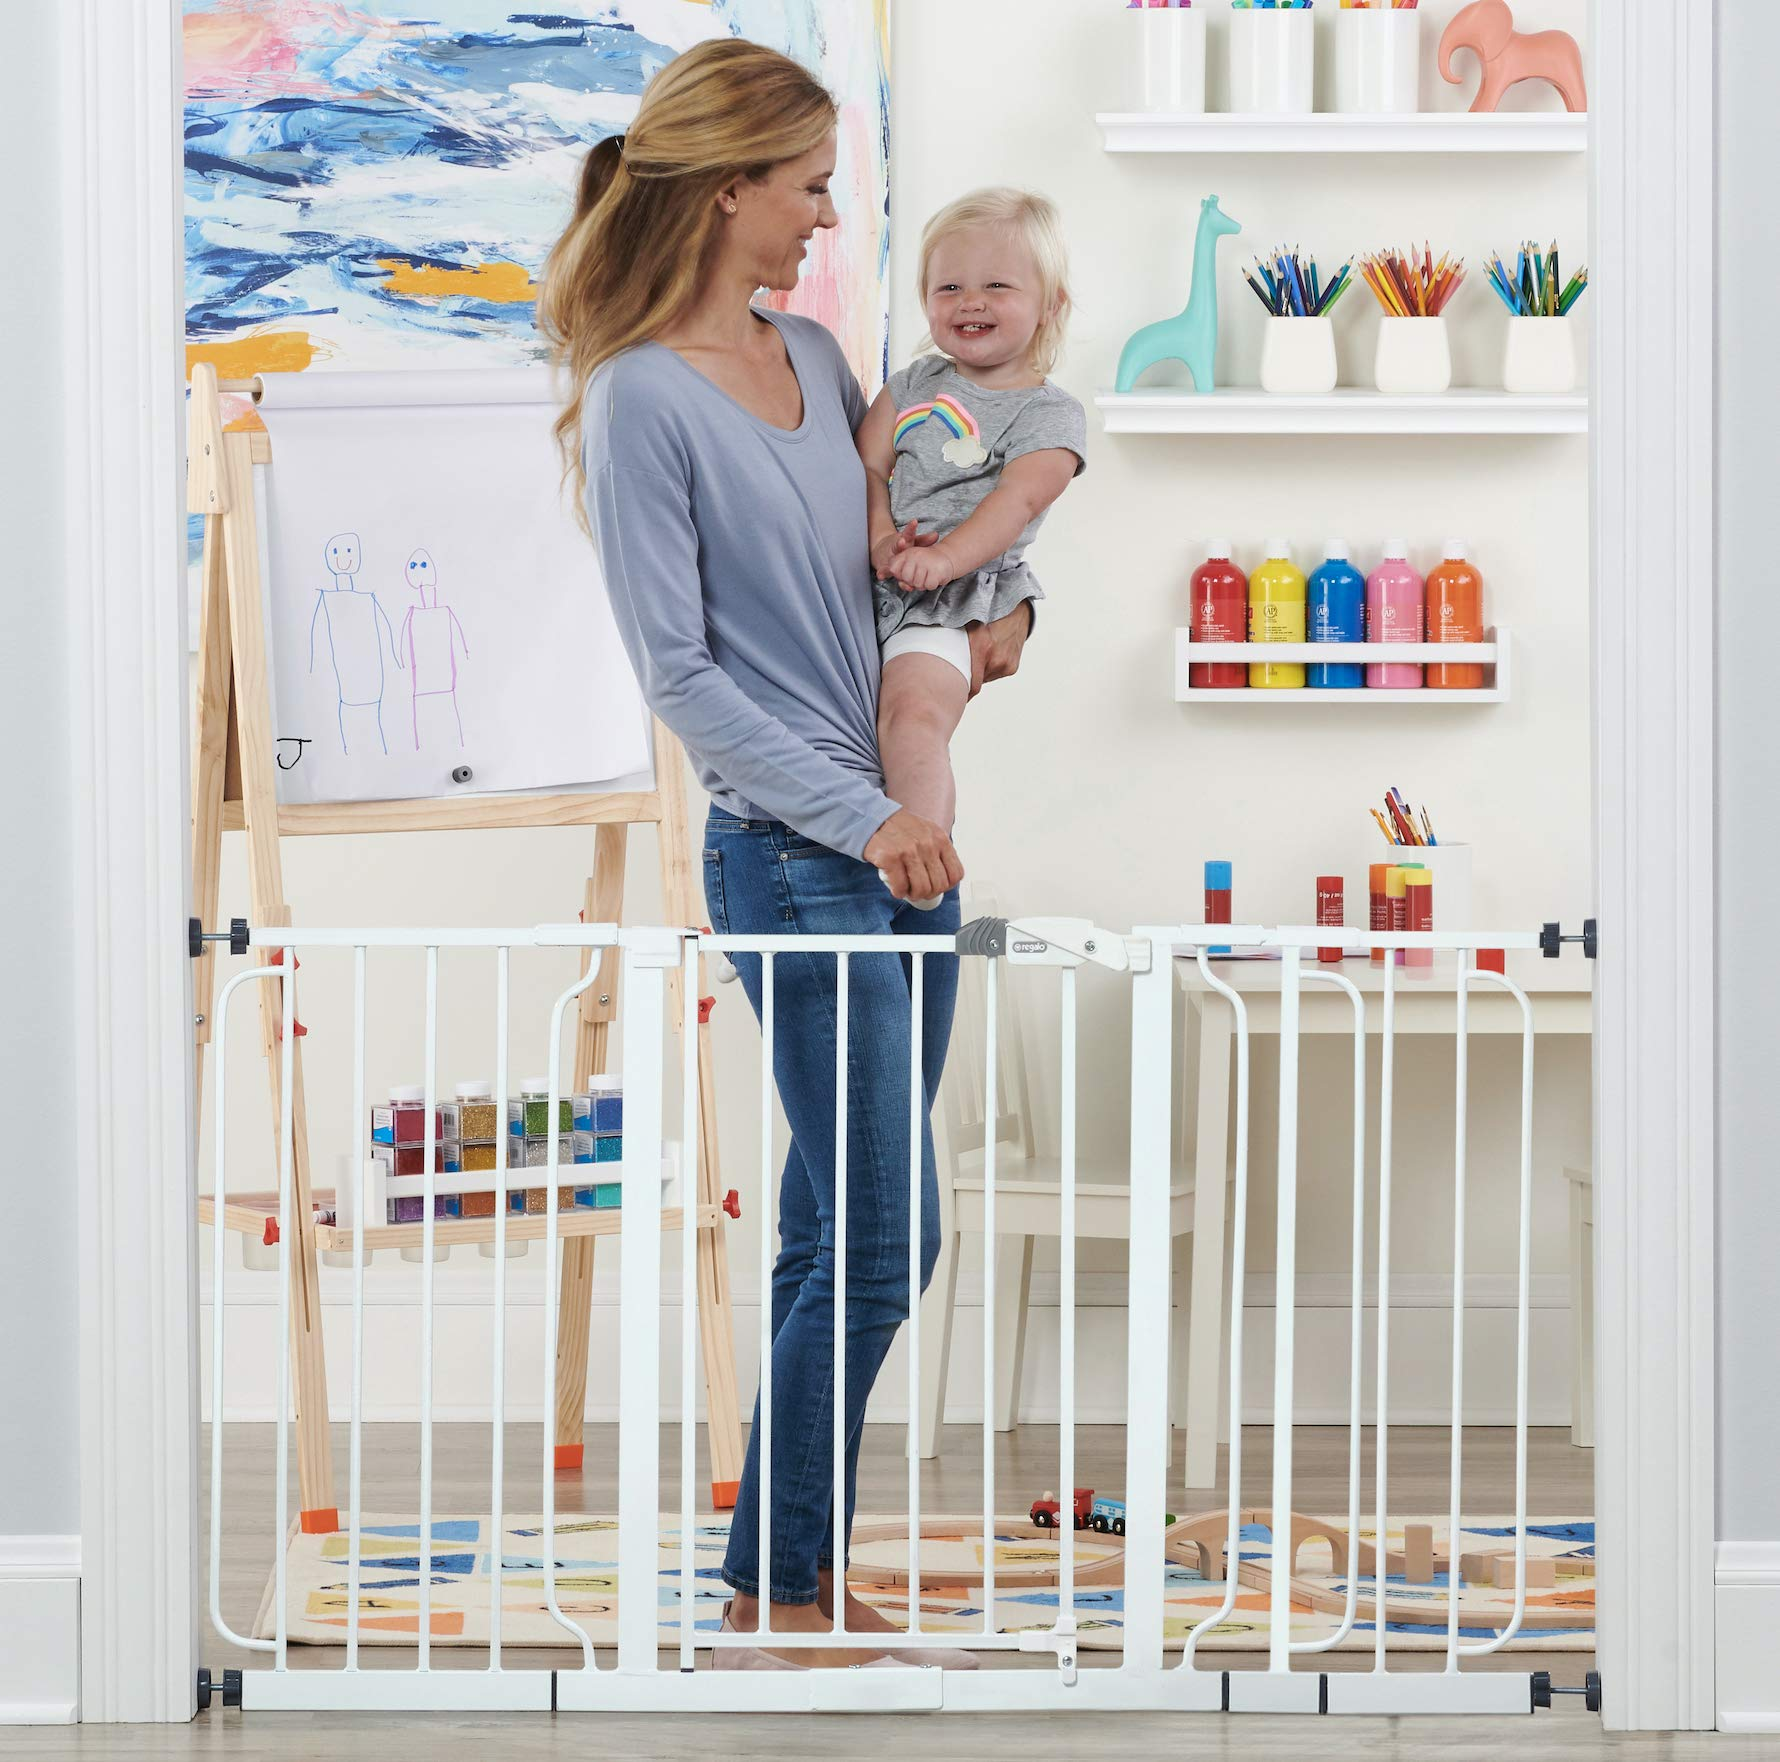 Regalo 56-Inch Extra WideSpan Walk Through Baby Gate, Bonus Kit, Includes 4-Inch, 8-Inch and 12-Inch Extension, 4 Pack of Pressure Mounts and 4 Pack of Wall Cups and Mounting Kit by Regalo